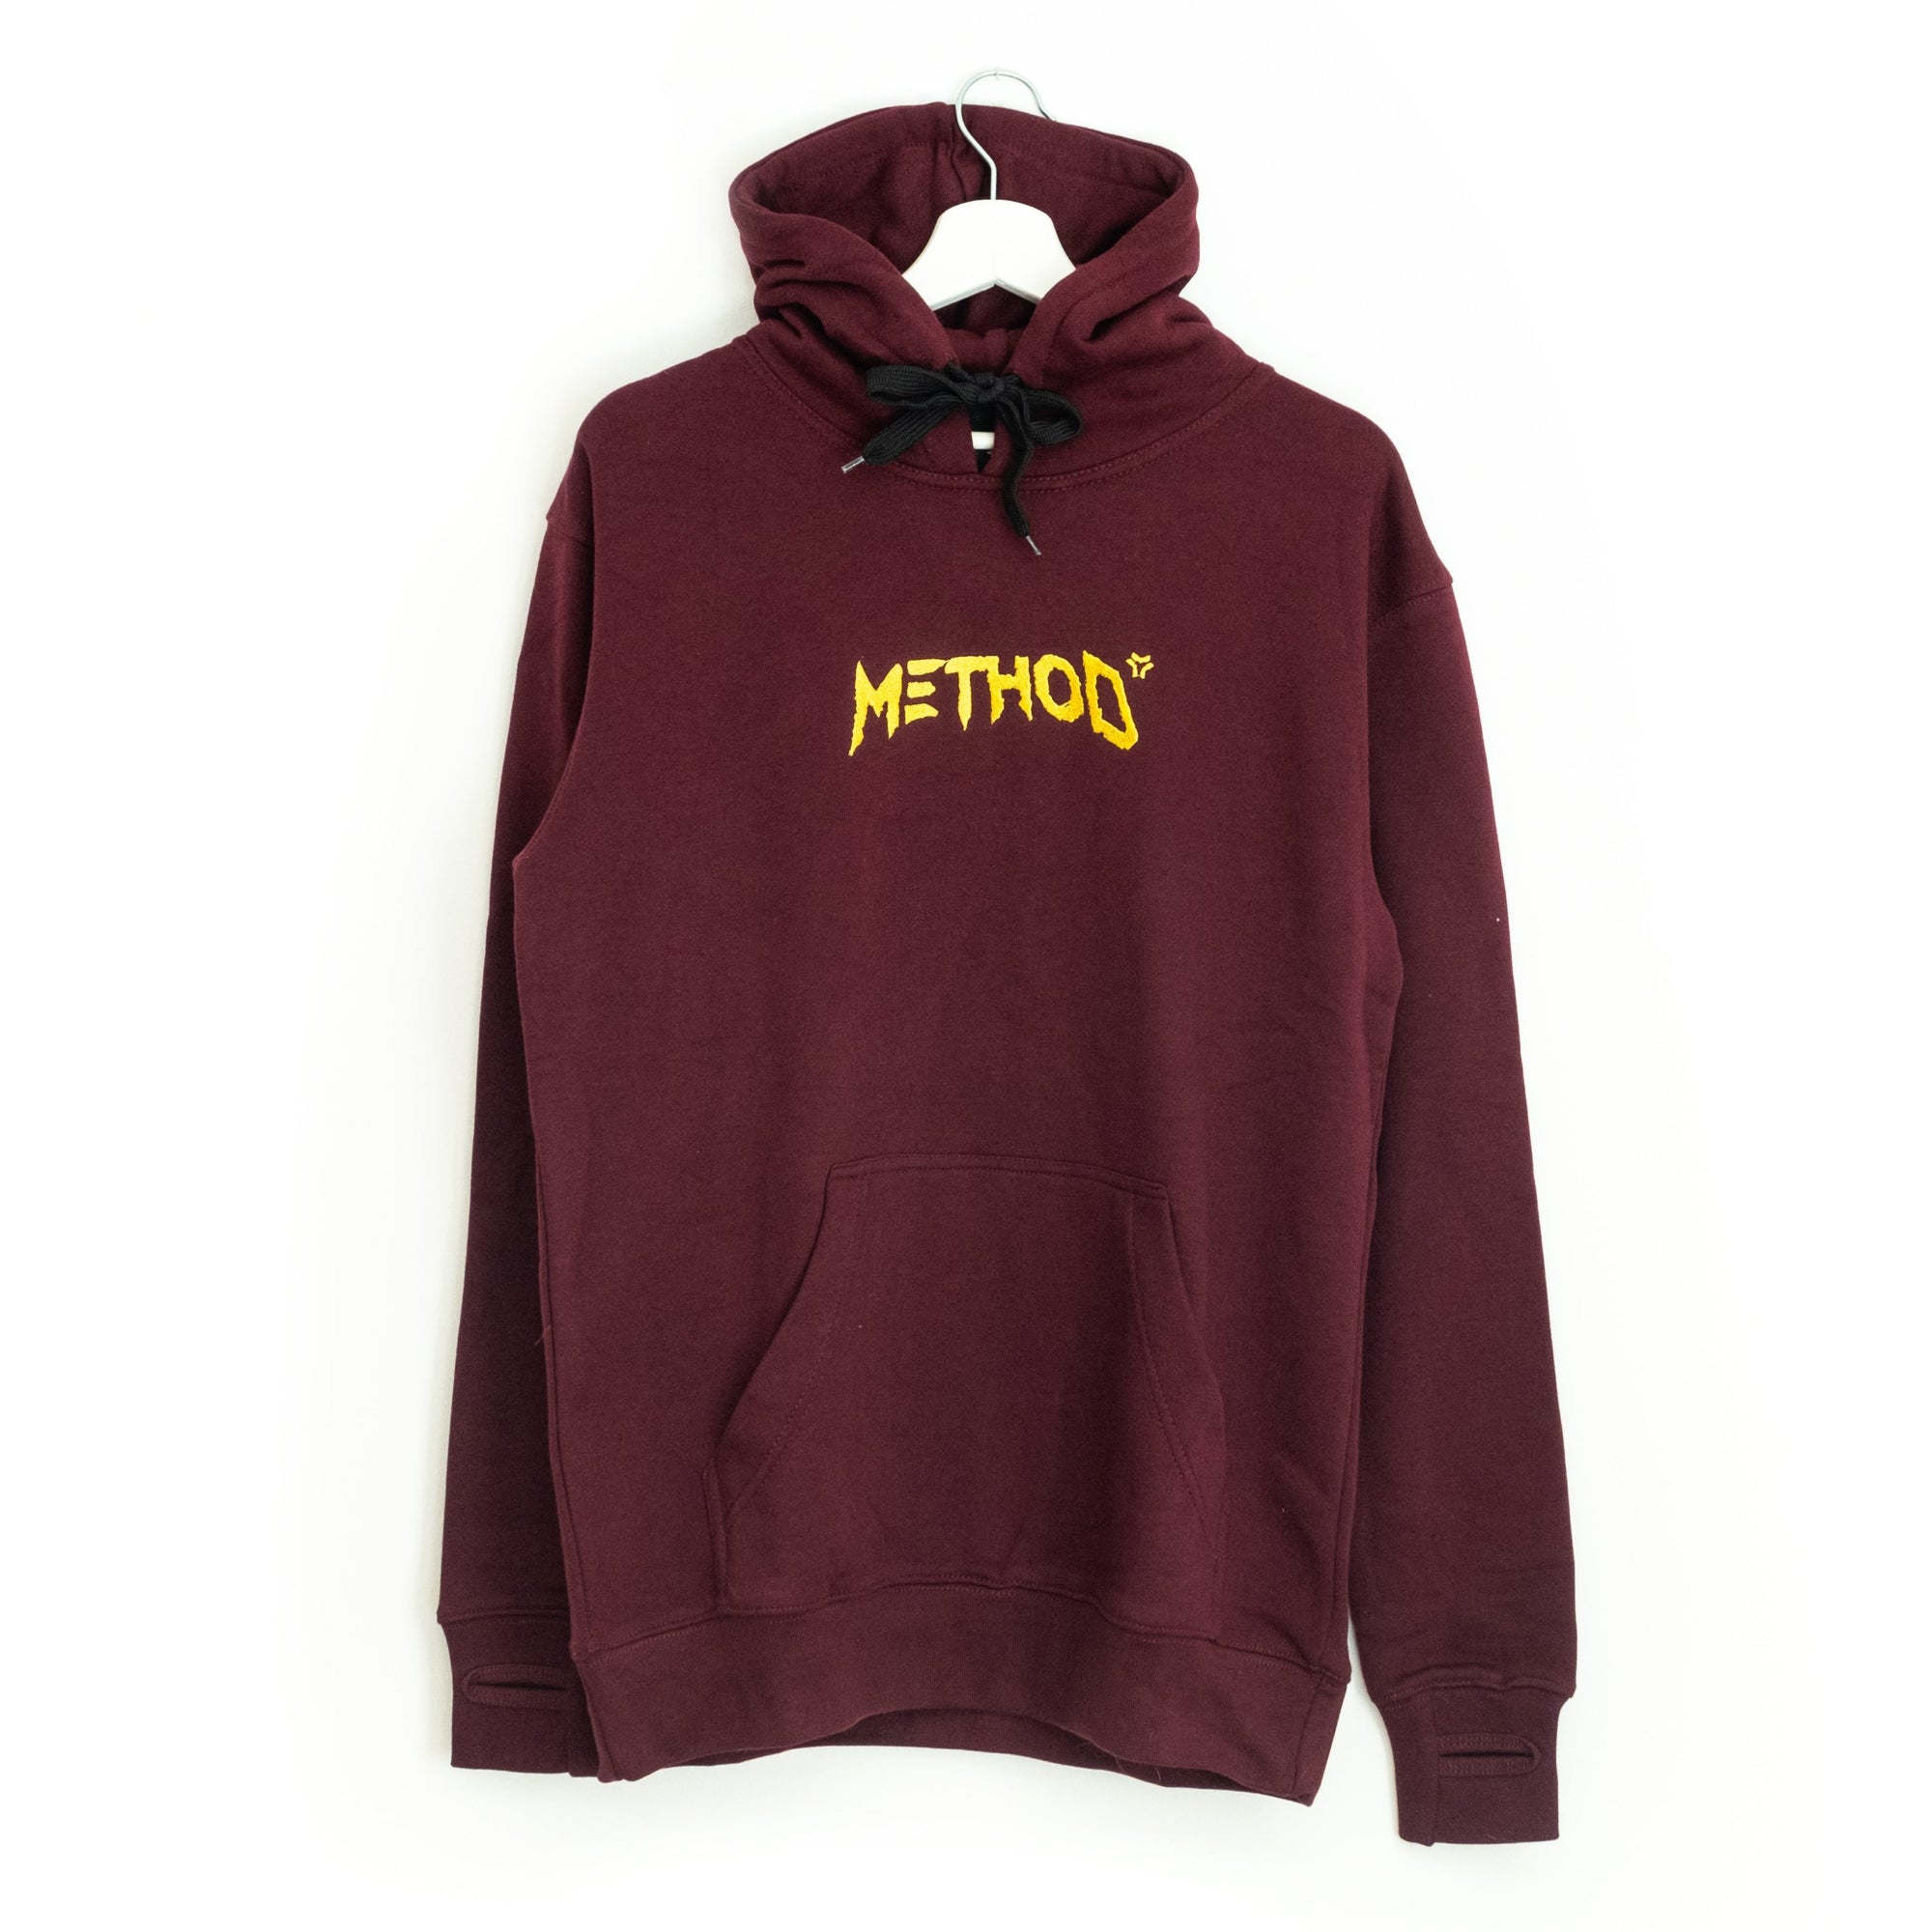 Method Bar Fly Hoodie